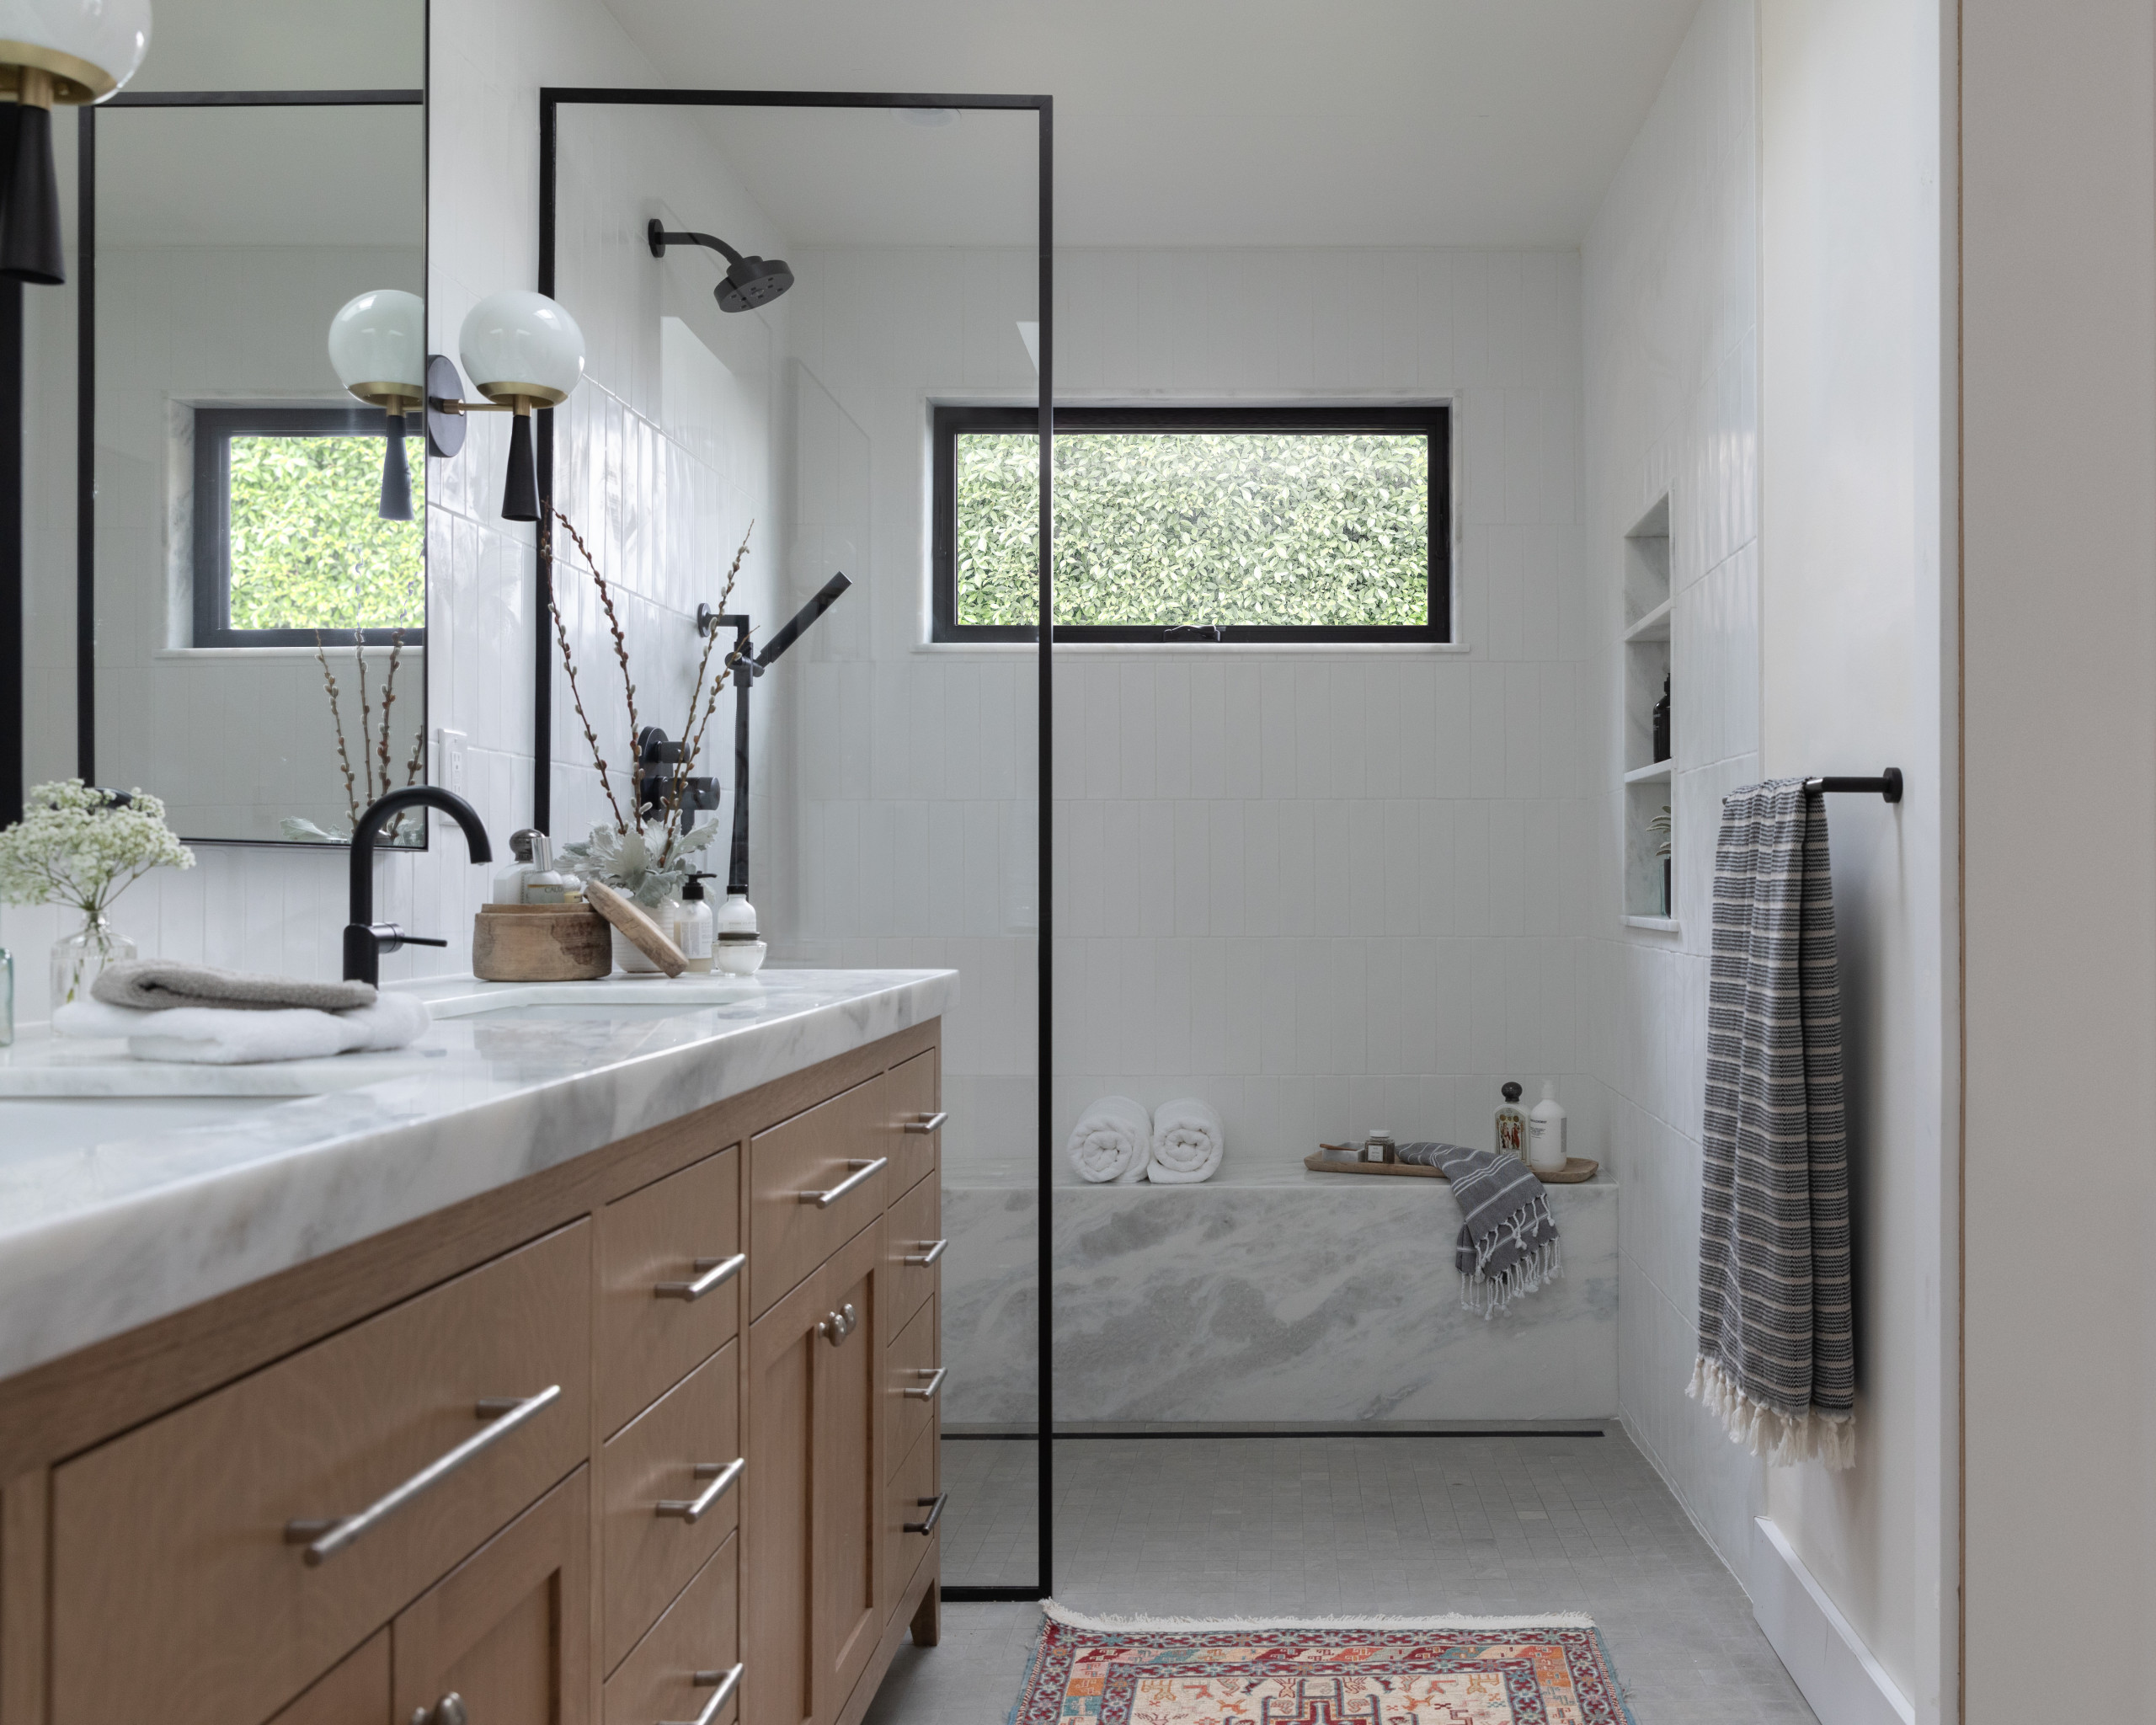 Tagliare Marmo Piano Cucina 75 beautiful walk-in shower with a bidet pictures & ideas